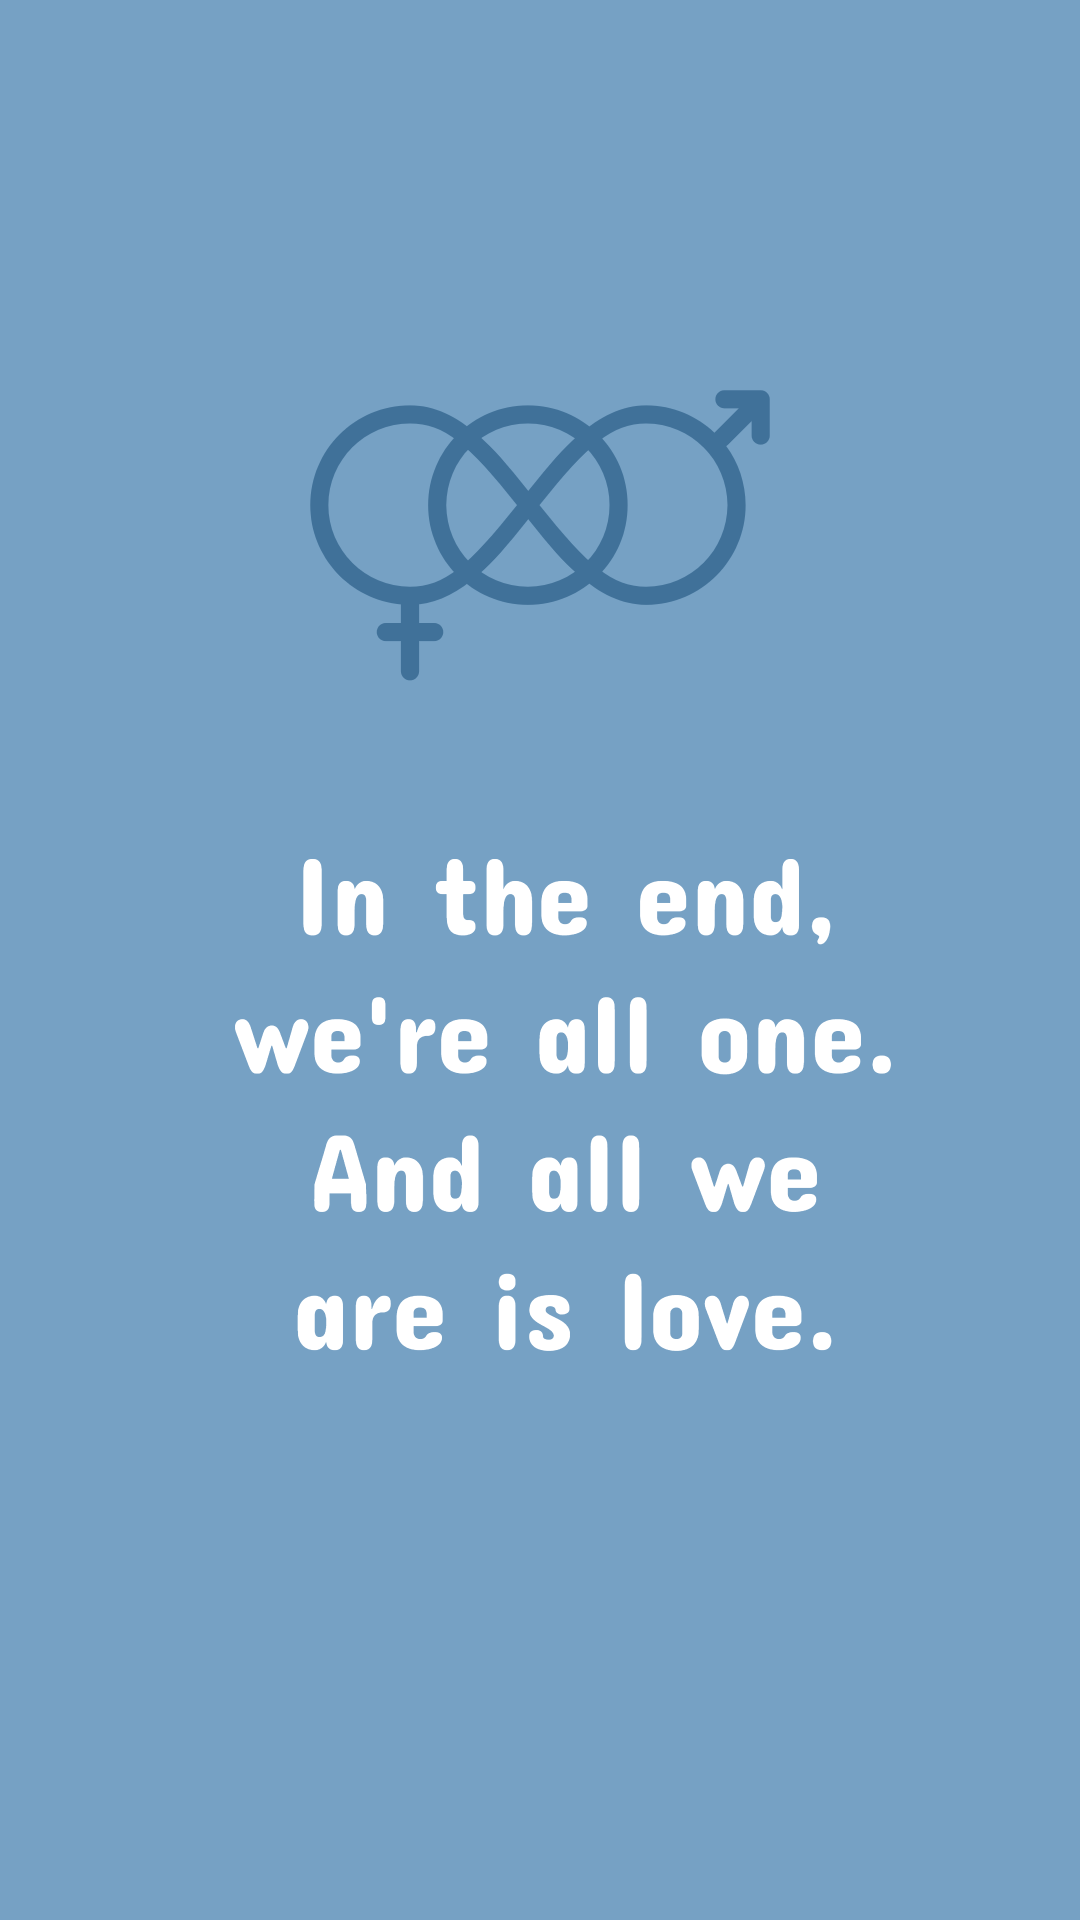 In the end we're all one.  And all we are is love. - Gender Equality Quote